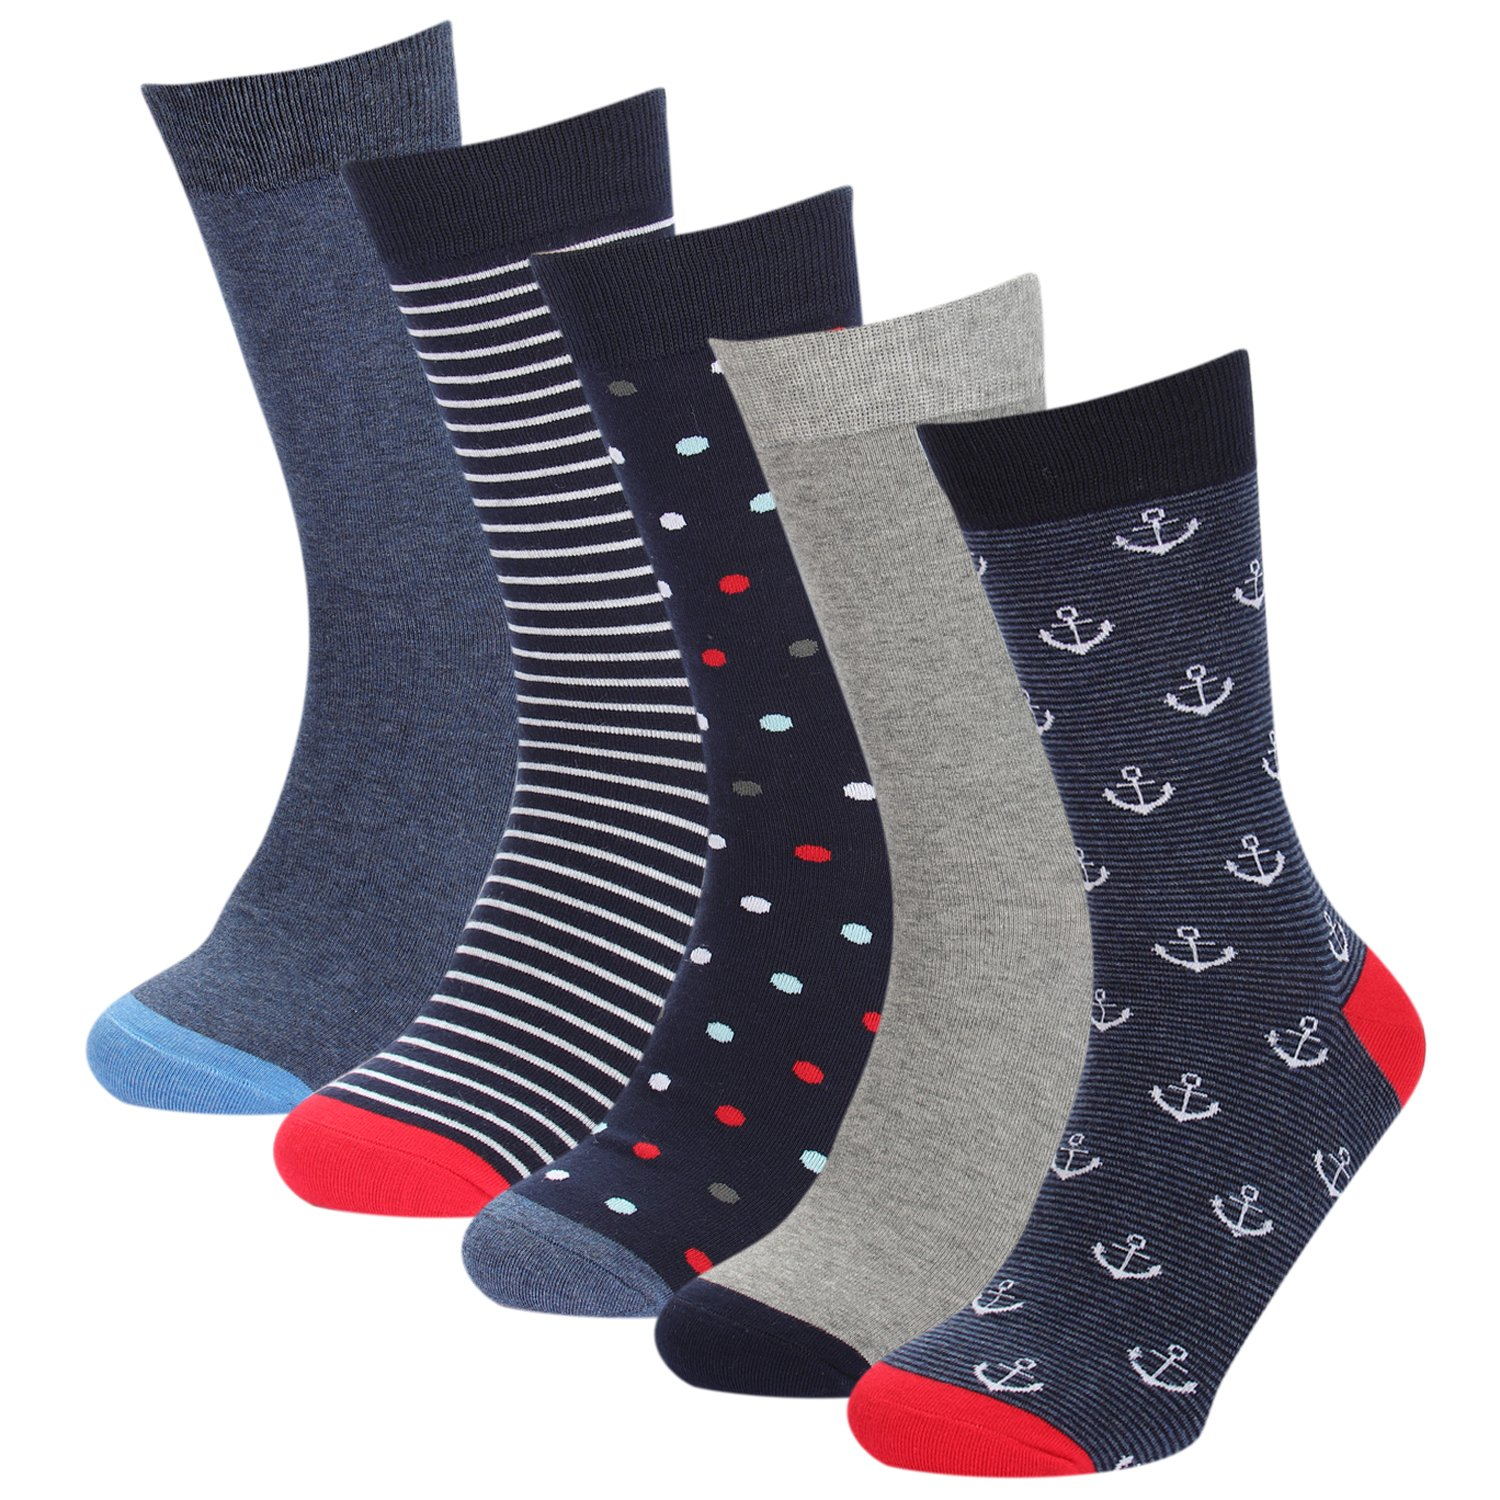 Men's Color Casual Dress Sock Novelty Funny Pattern Cotton Socks Hoyols